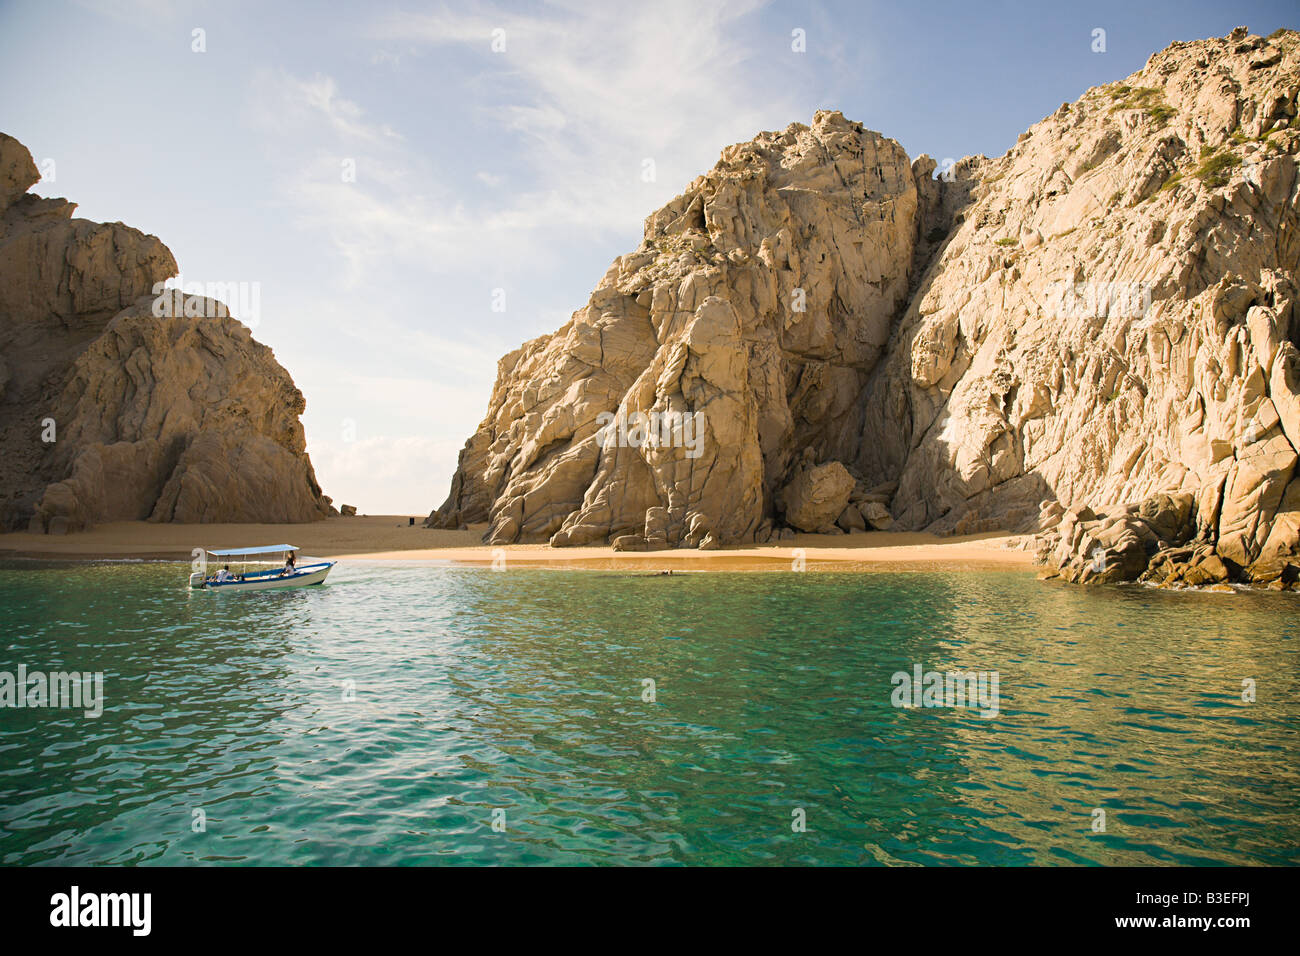 Boat at secluded beach - Stock Image